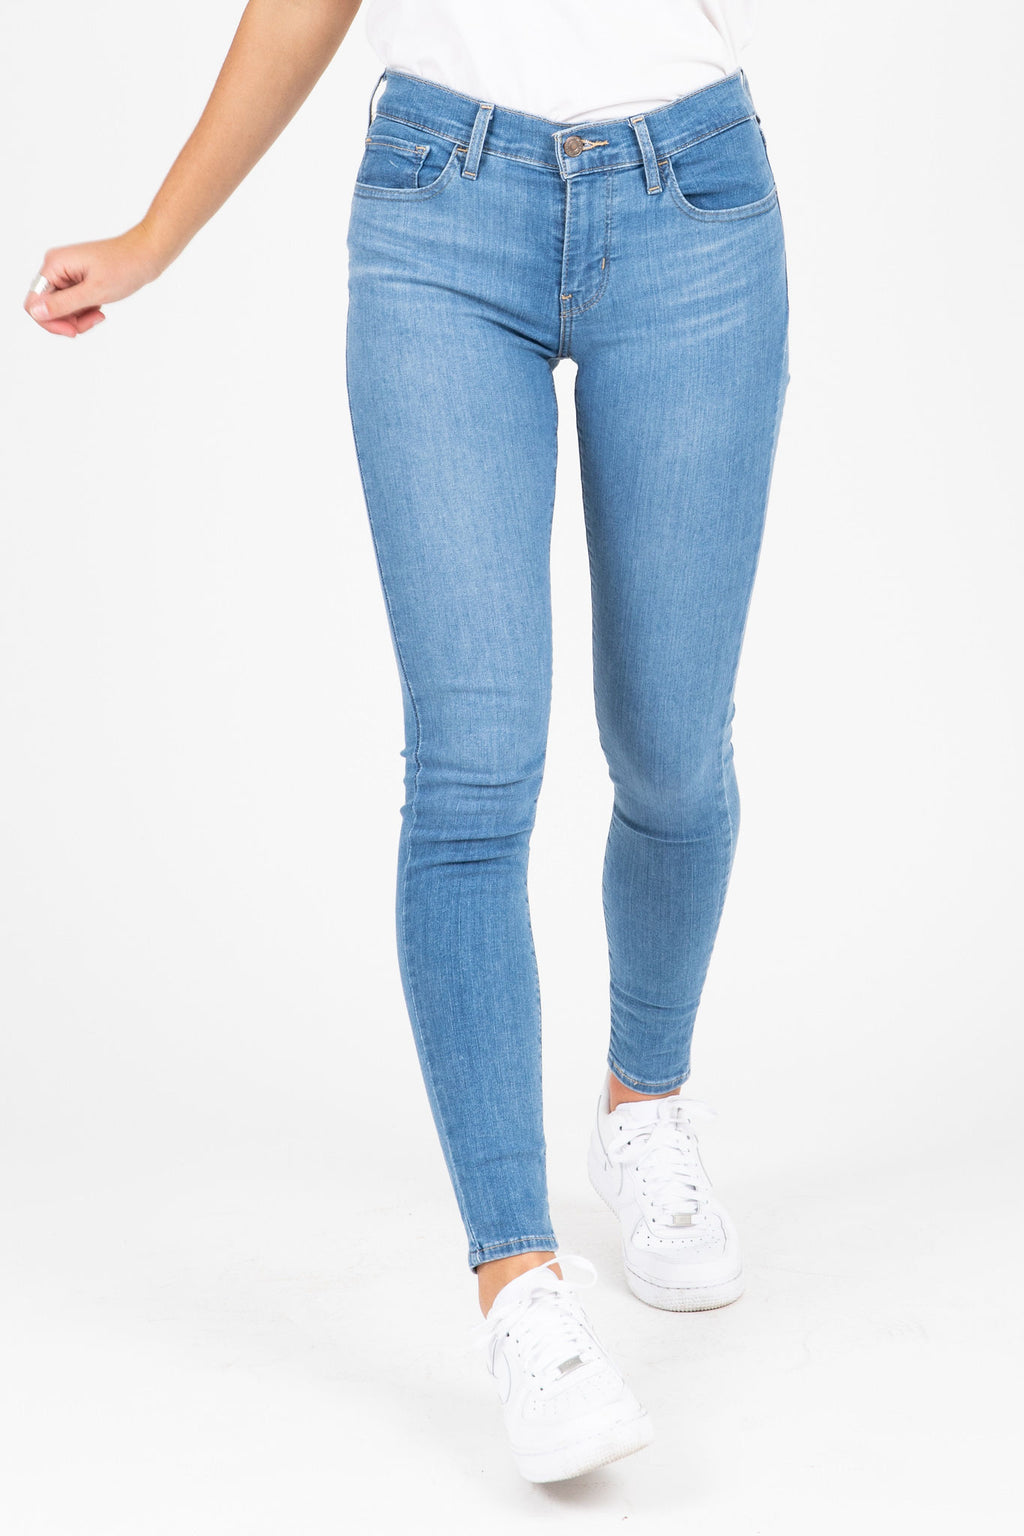 Levi's: 710 Super Skinny Jeans in Quebec Charm